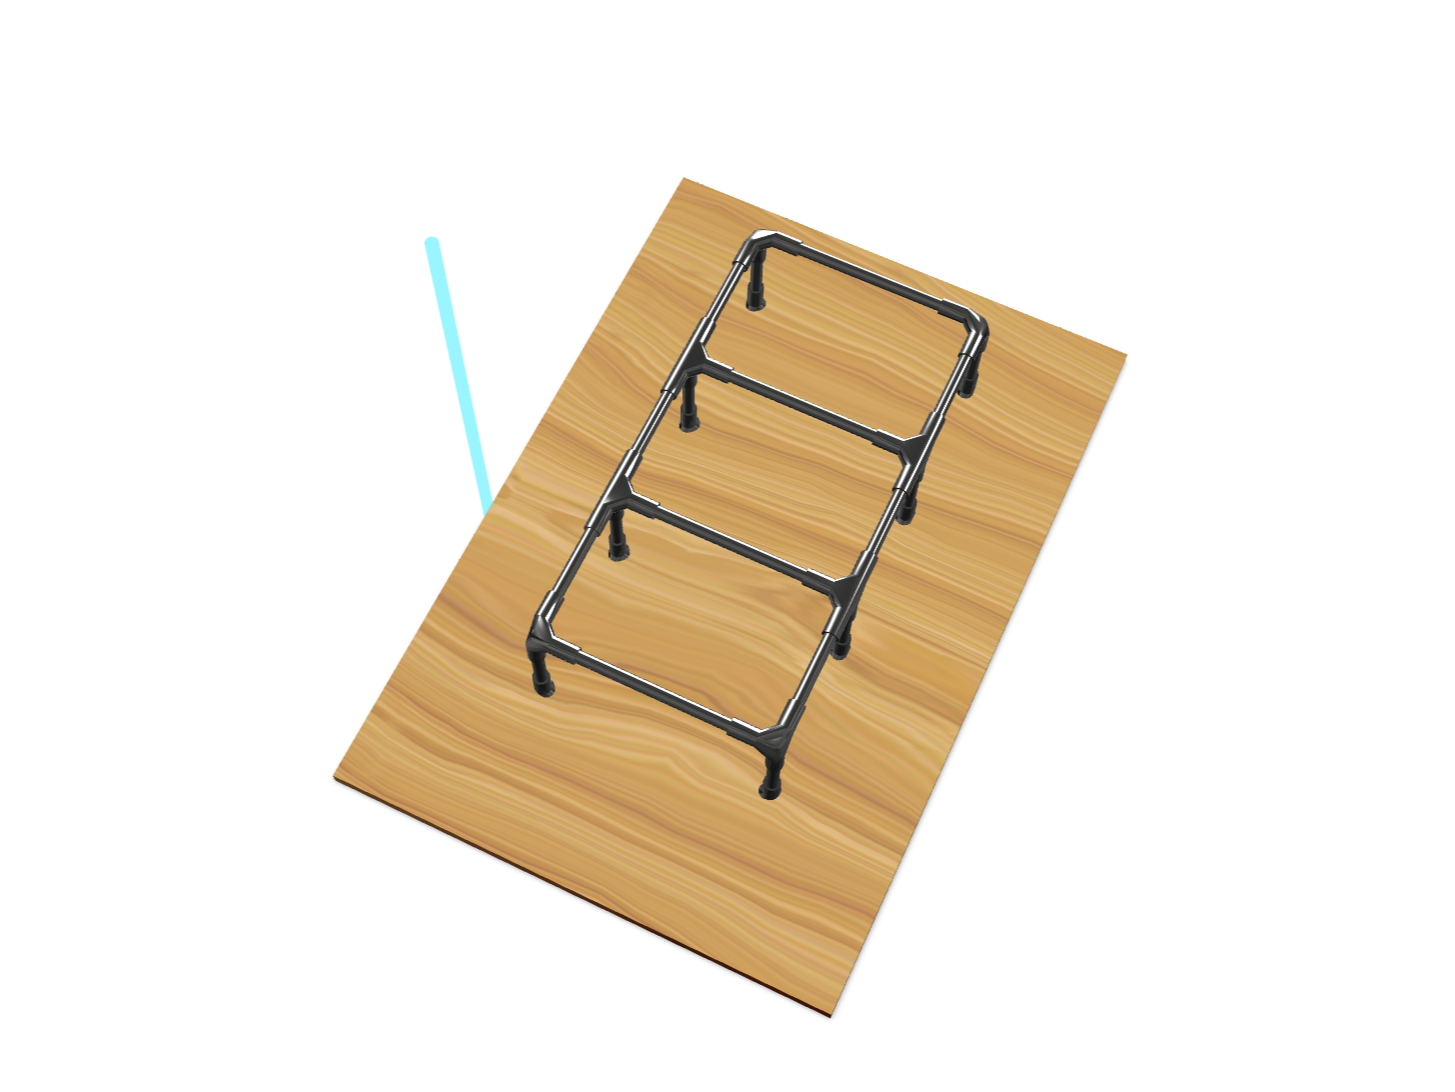 short ladder - 3D design by s.macphee Dec 22, 2017